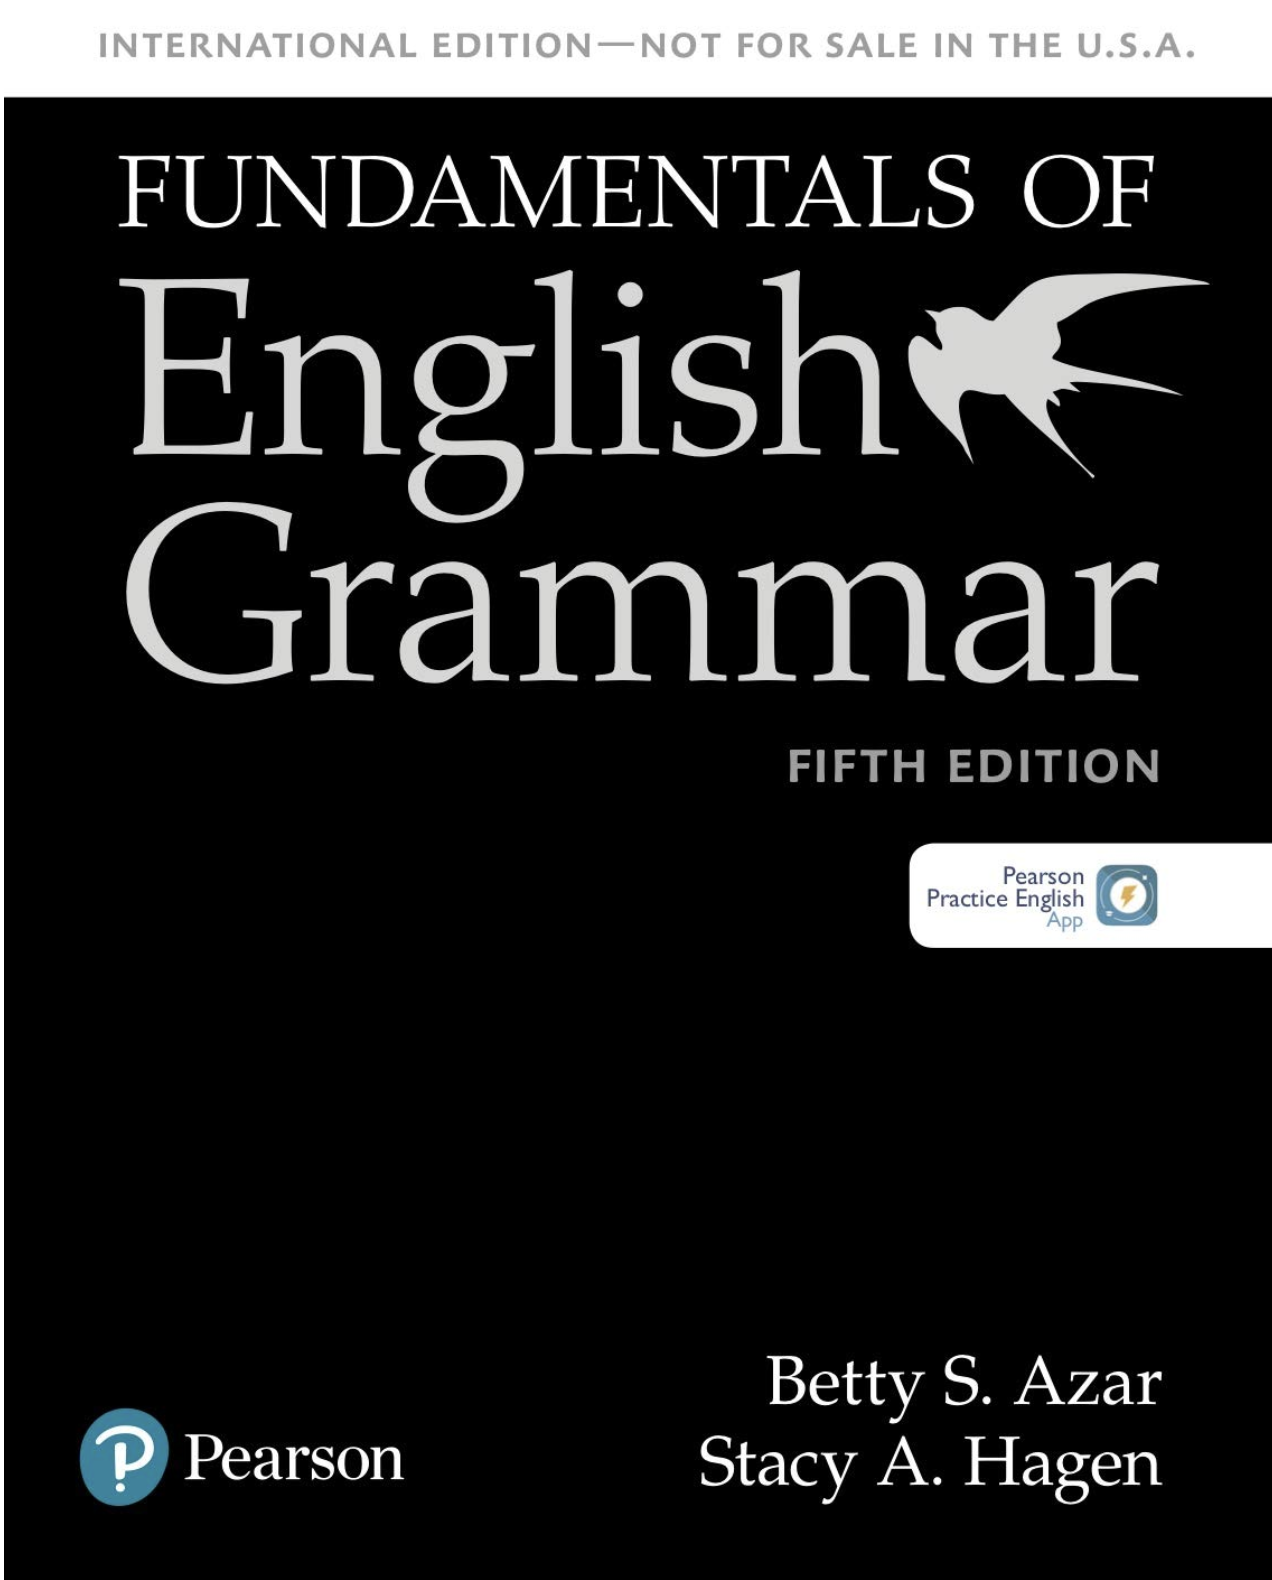 FUNDAMENTALS OF ENGLISH GRAMMAR: STUDENT BOOK WITH MOBILE APP